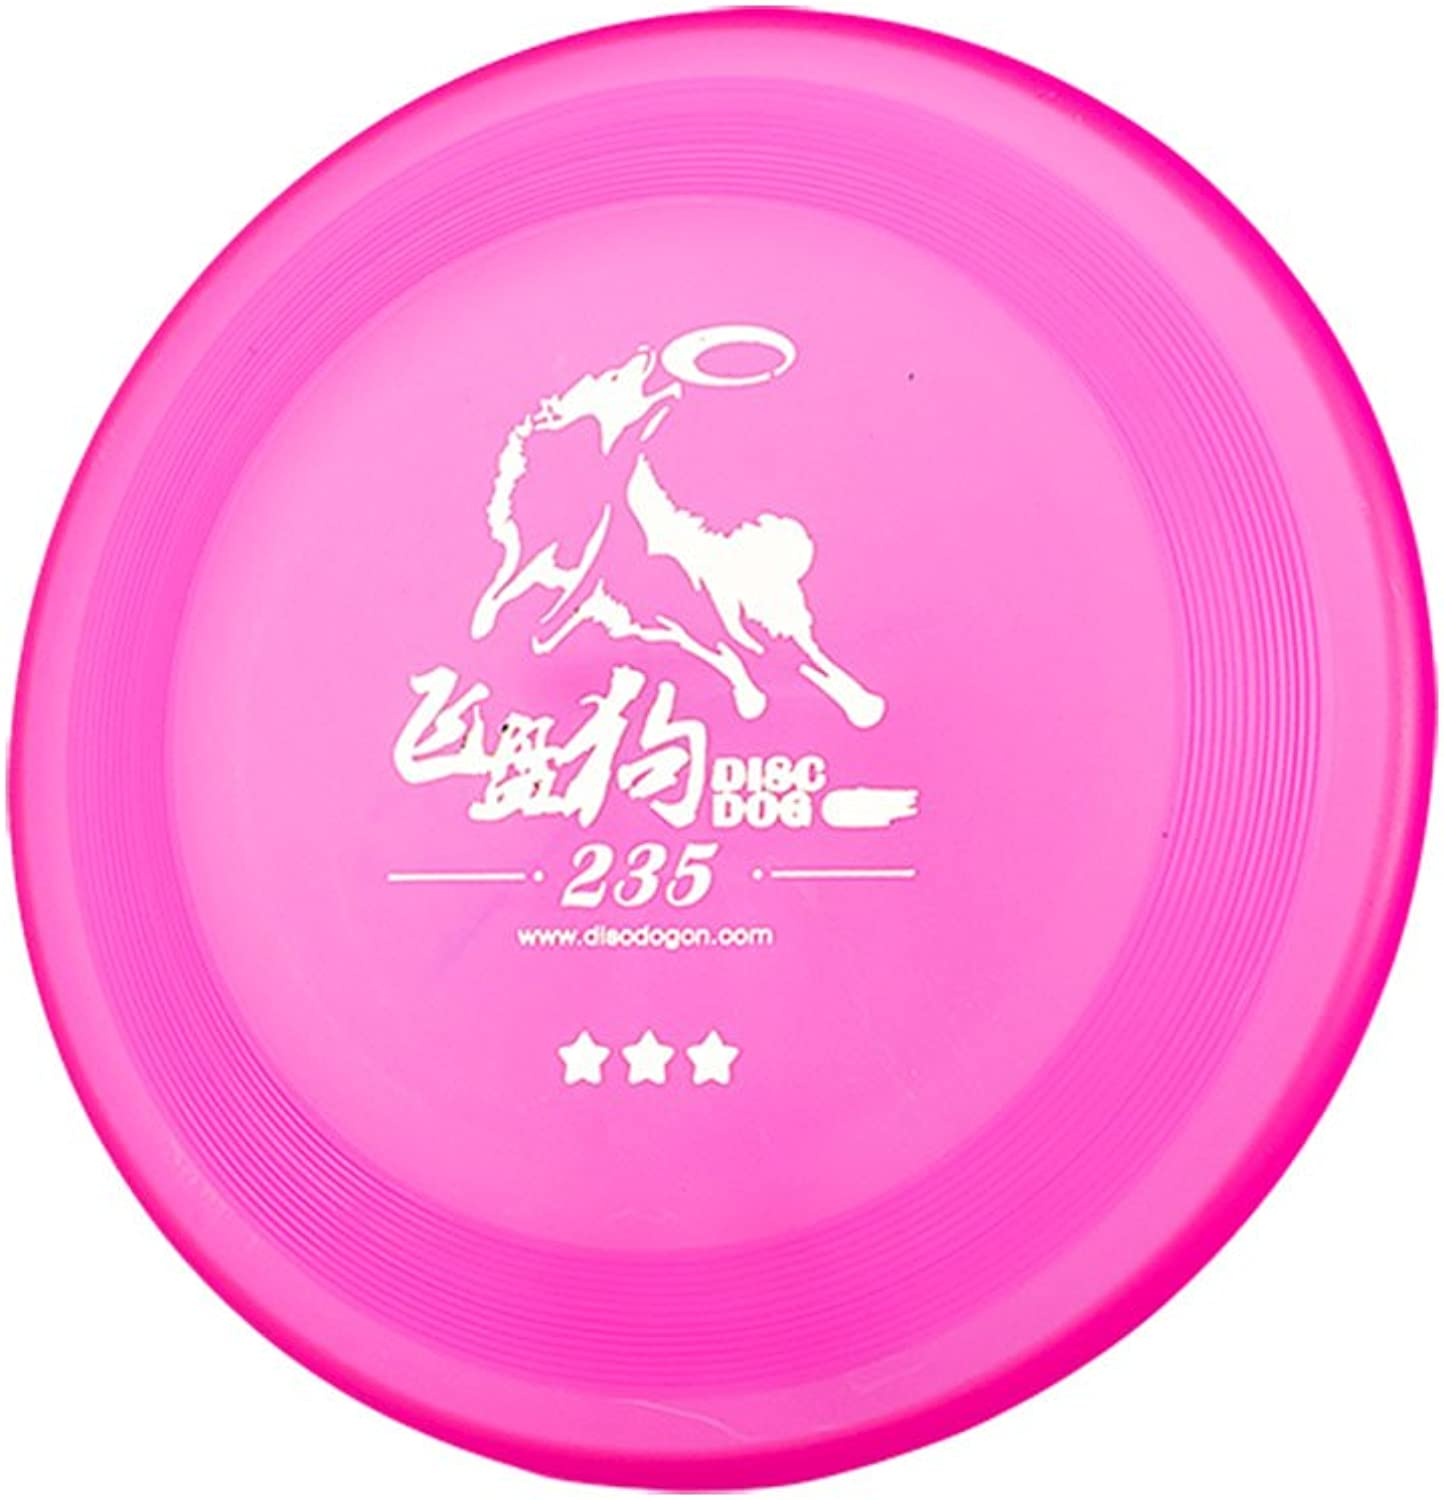 DISCDOG 3Star Toughness Dog Flying Disc Dog Play Toy Frisbee Training(Pink,91 4 Inch)